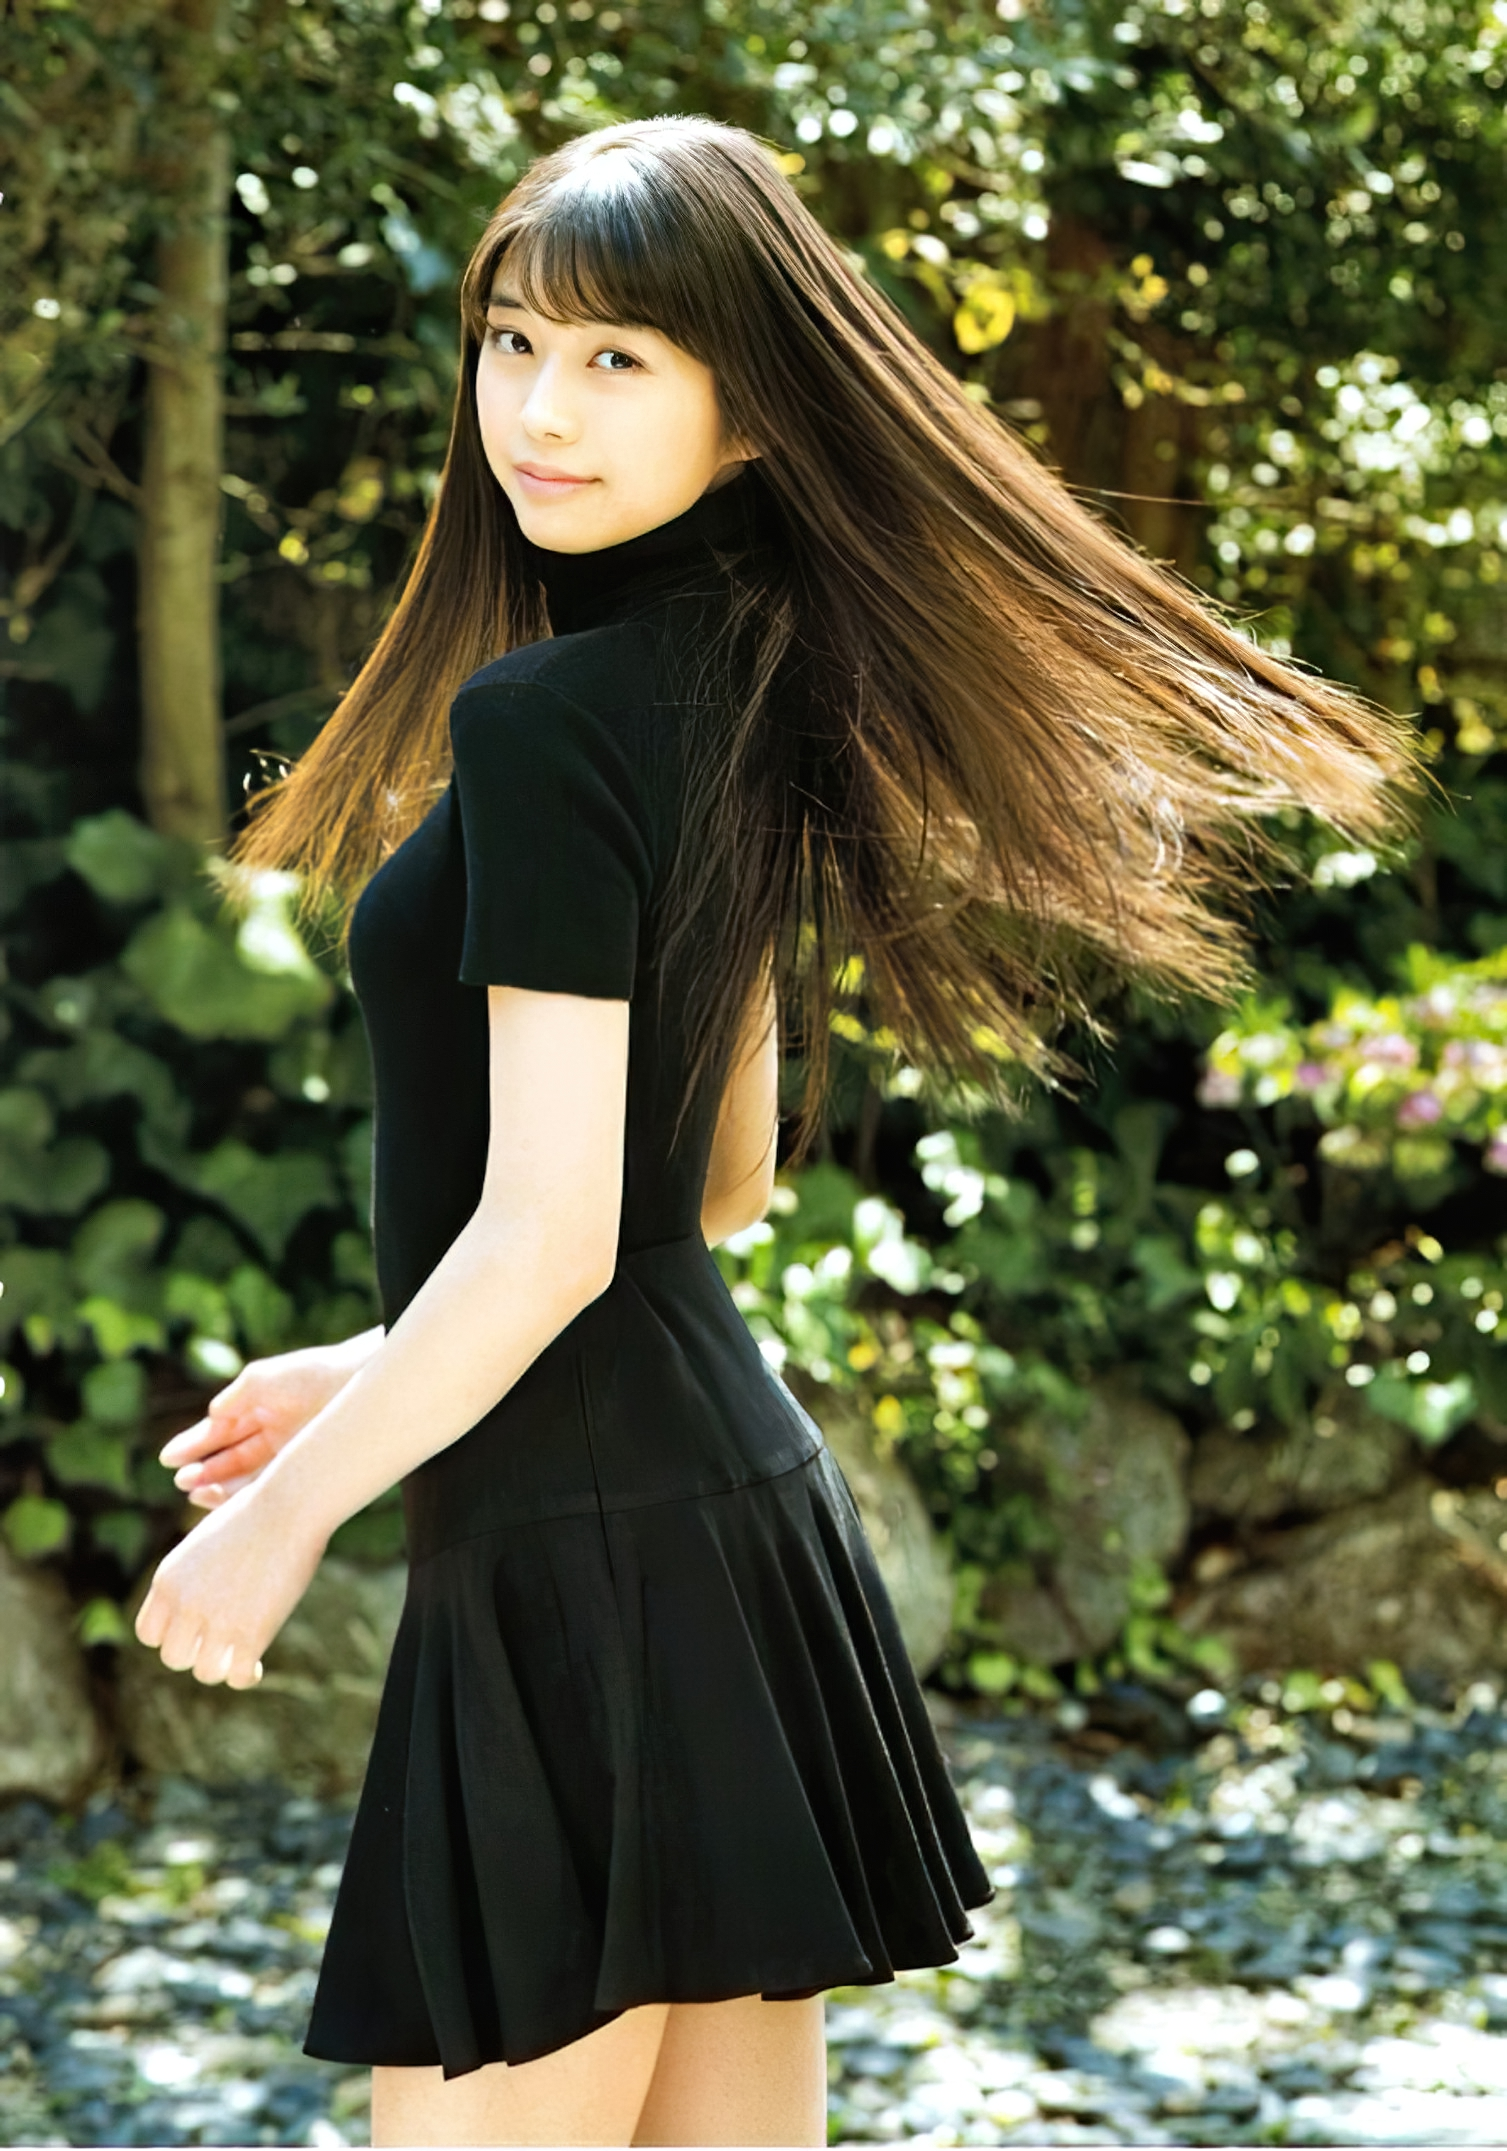 One beautiful girl She is 17 years old and a senior in high school MARIE MAKINO011